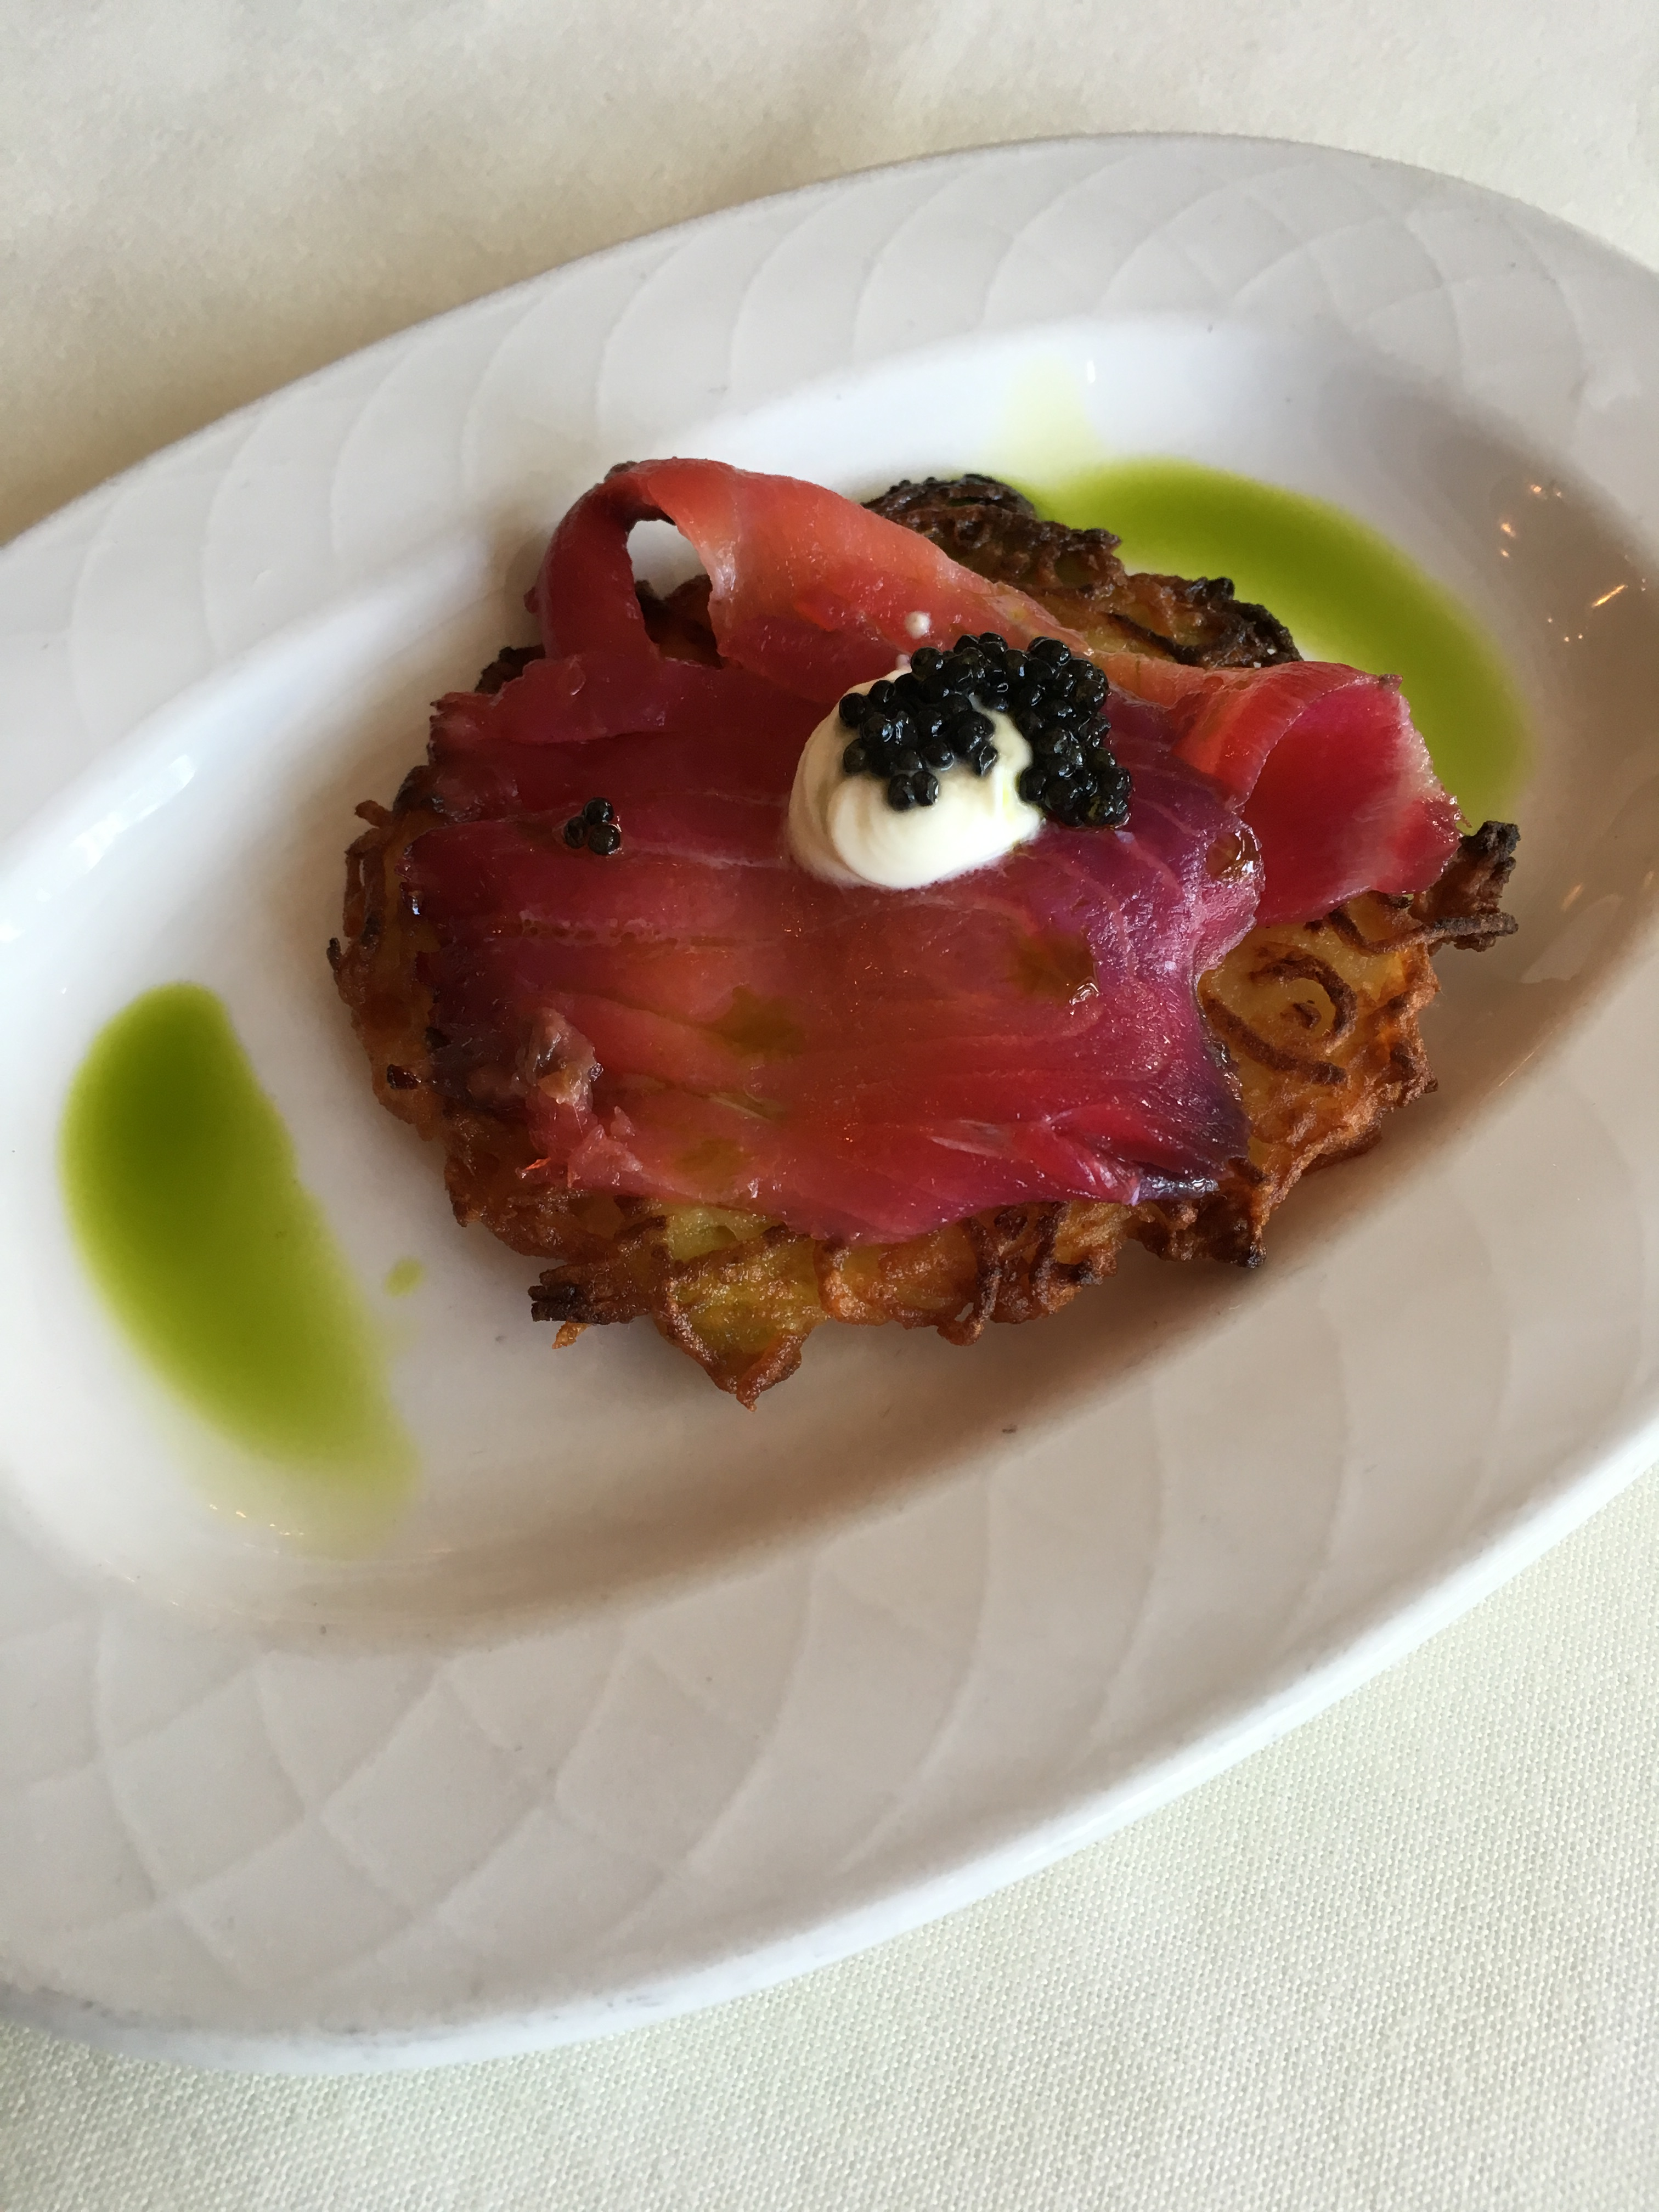 Red Beet Cured Pacific Salmon with Potato Latkes, Sour Cream and Paddlefish Caviar